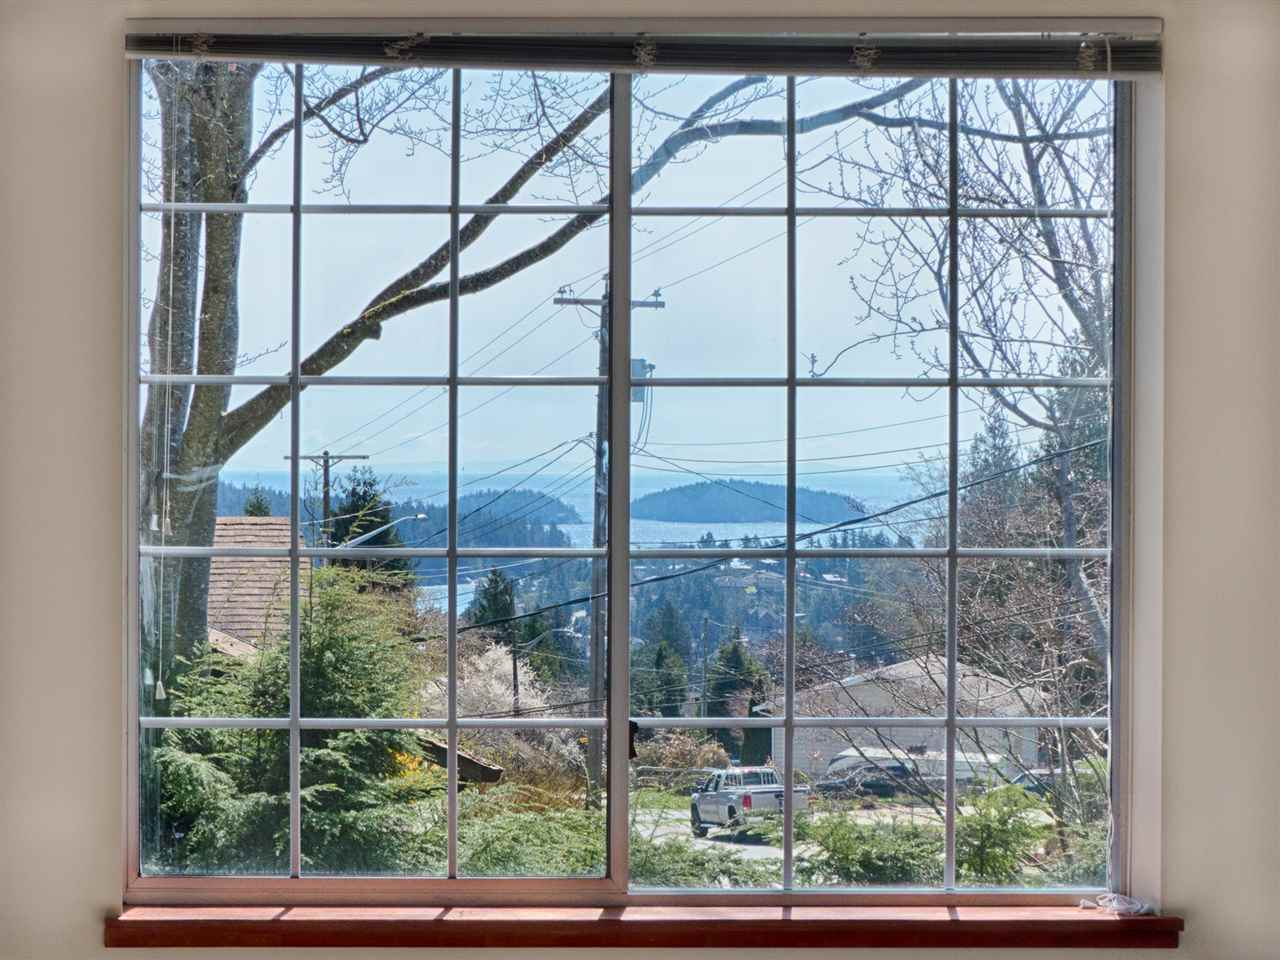 Main Photo: 748 CREEKSIDE Crescent in Gibsons: Gibsons & Area House for sale (Sunshine Coast)  : MLS(r) # R2154804